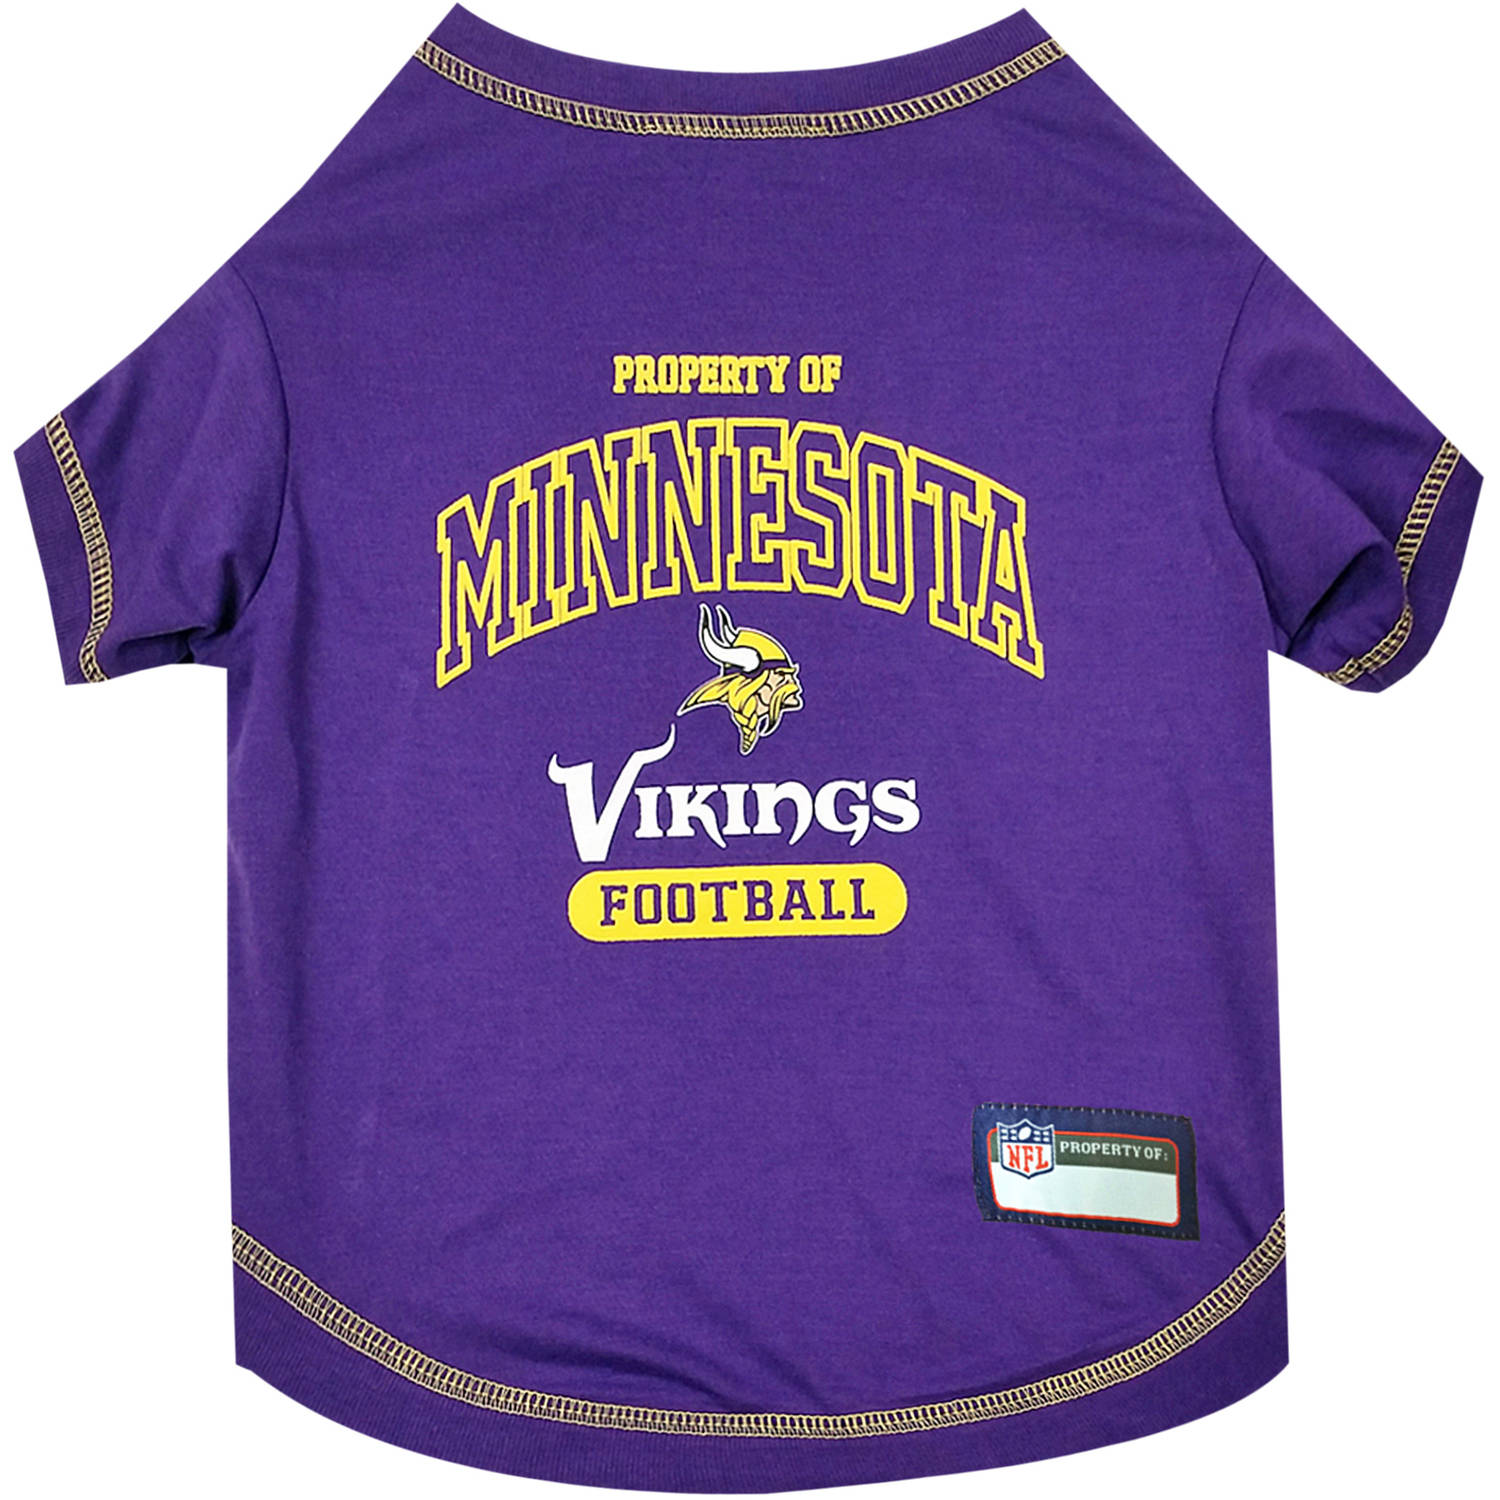 Pets First NFL Minnesota Vikings Pet T-shirt, Assorted Sizes